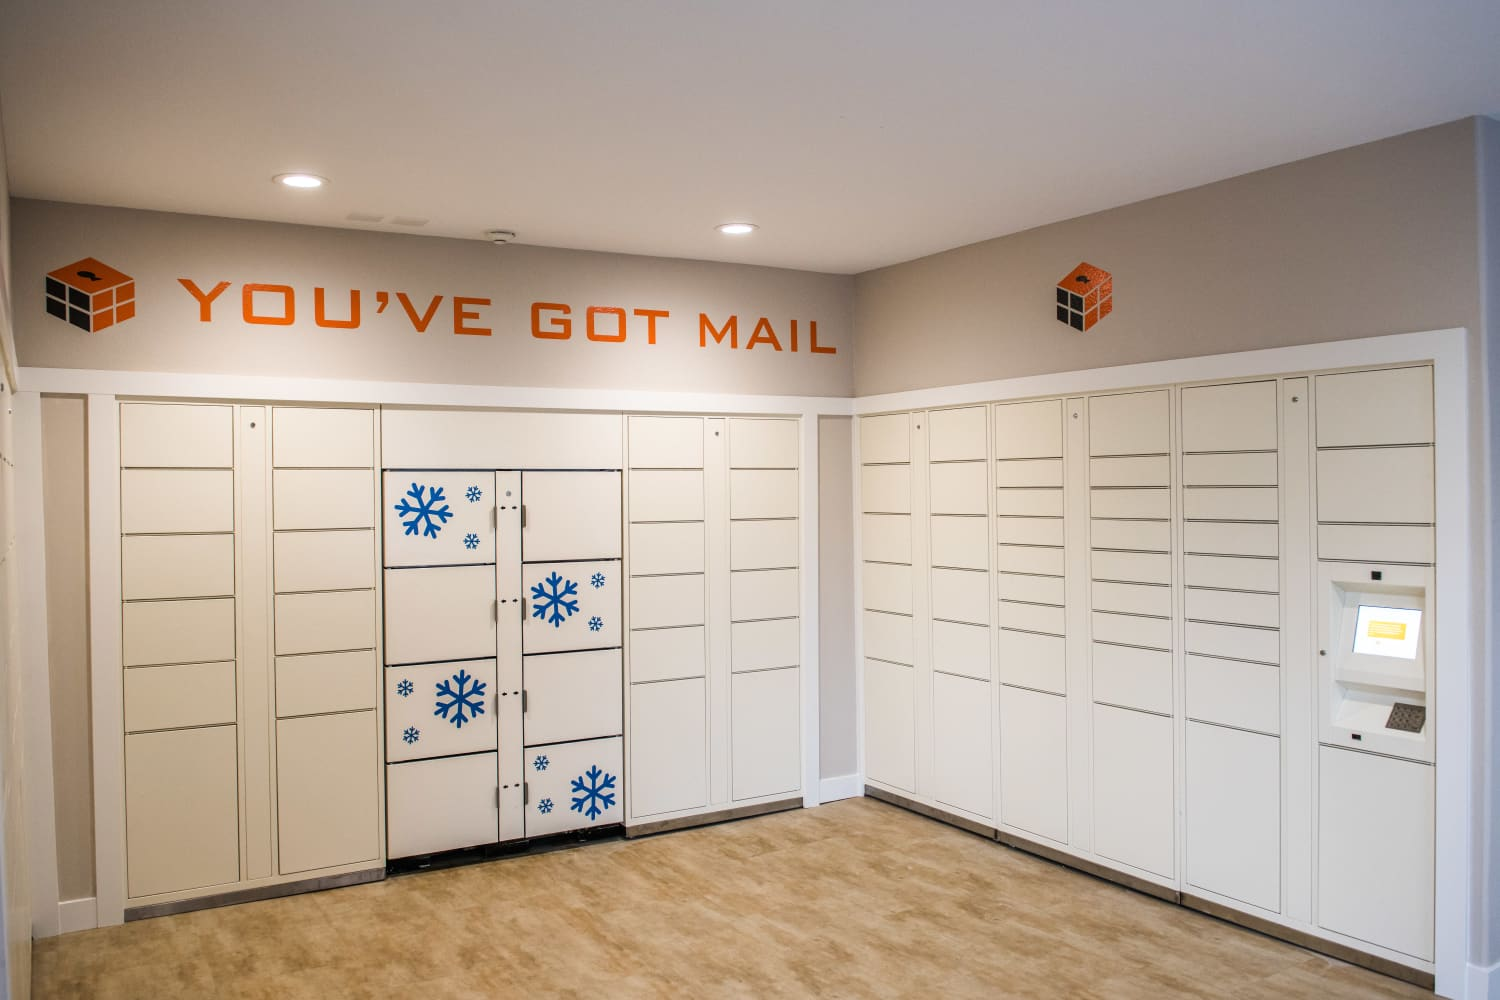 Mail receiving room at The Knolls at Inglewood Hill in Sammamish, Washington